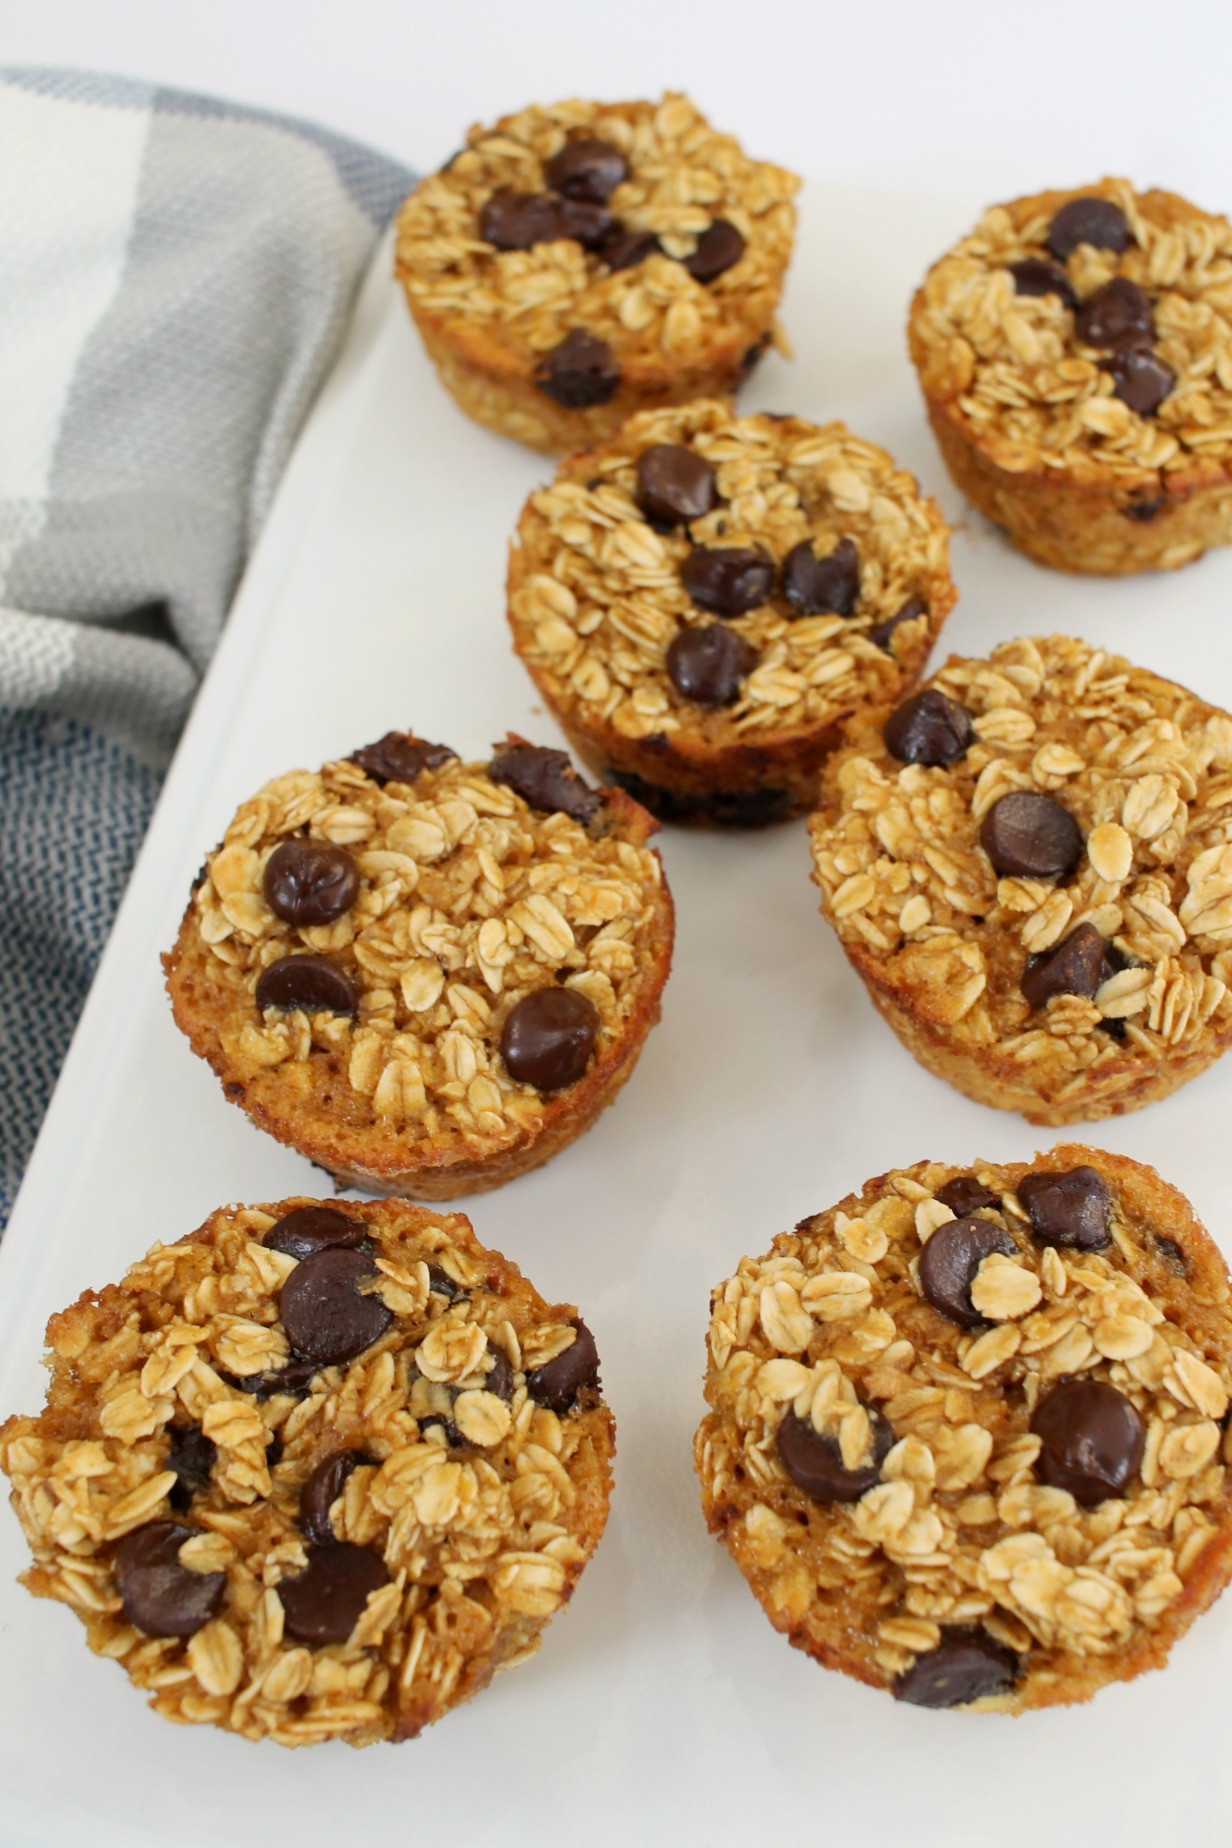 white rectangle plate with 7 peanut butter chocolate chip baked oatmeal muffins